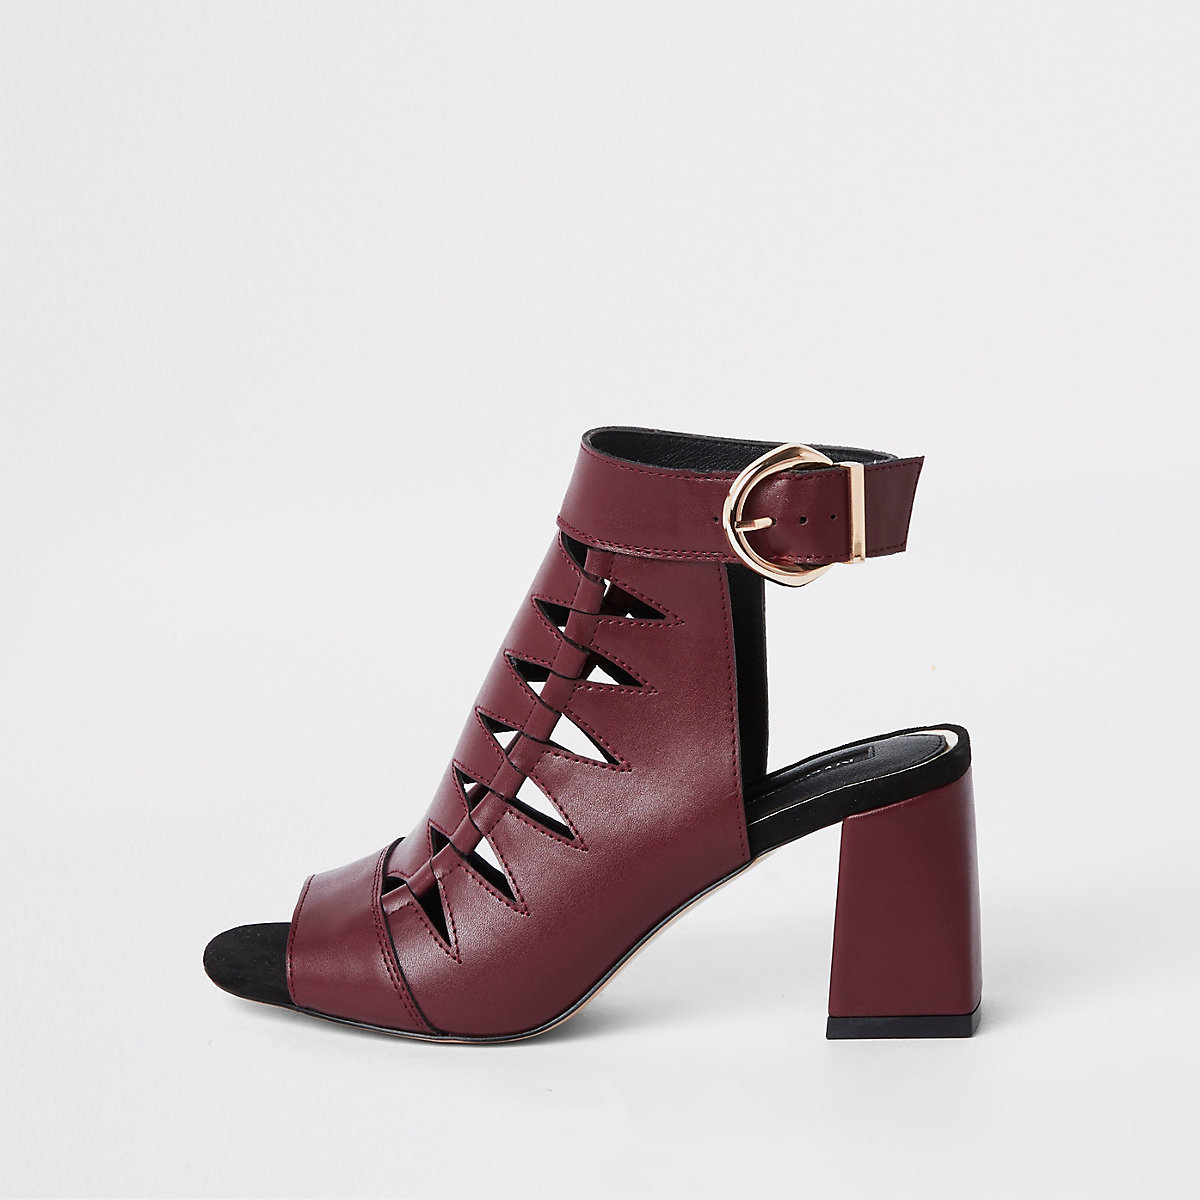 Burgundy cut out shoe boots